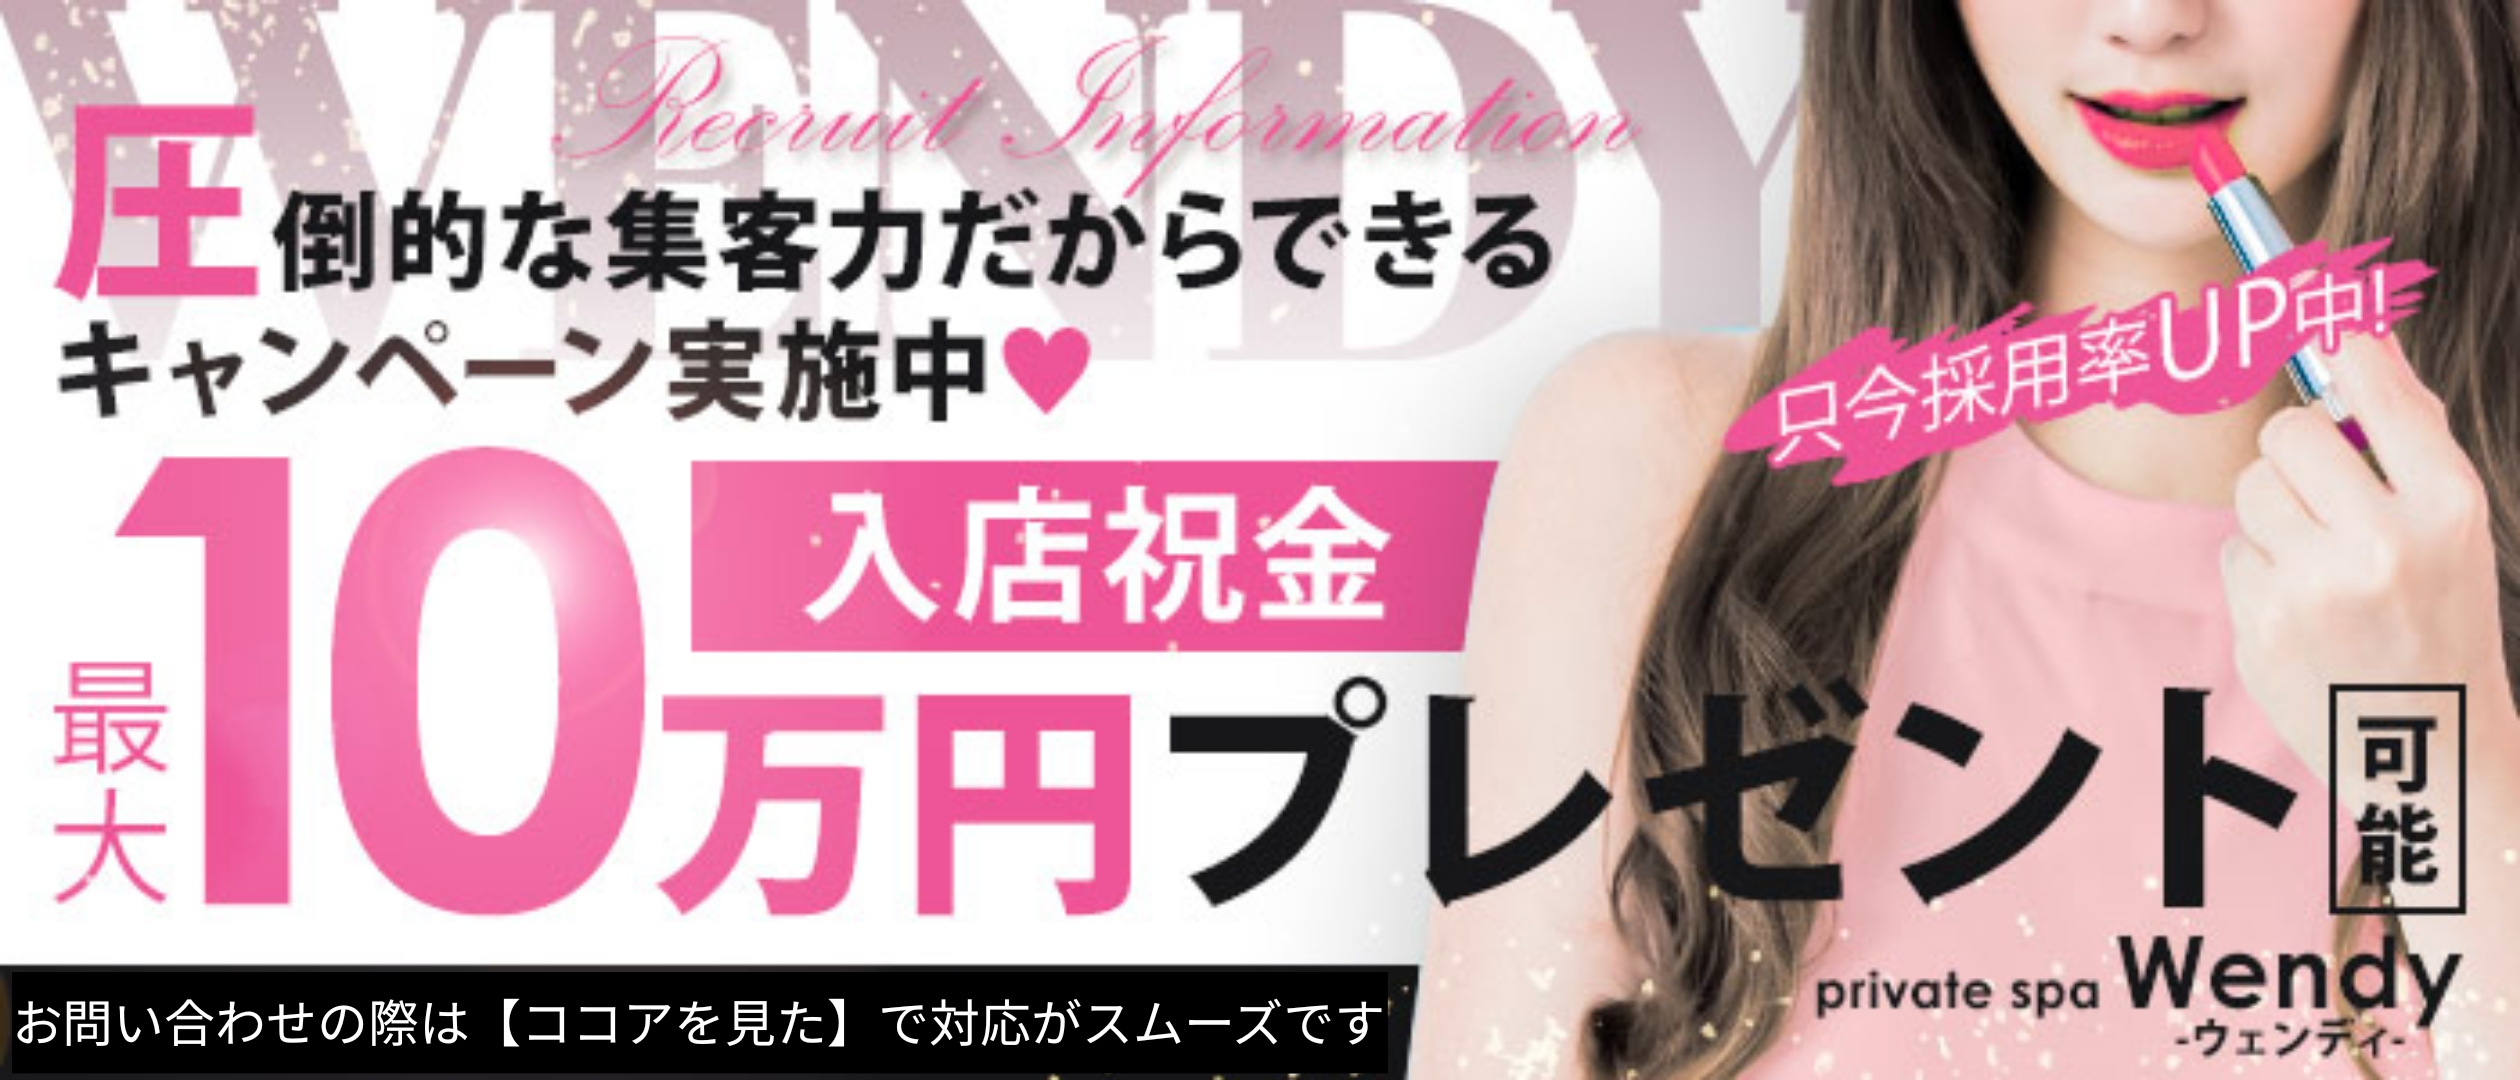 private spa Wendy~ウェンディ~ - 福岡市・博多